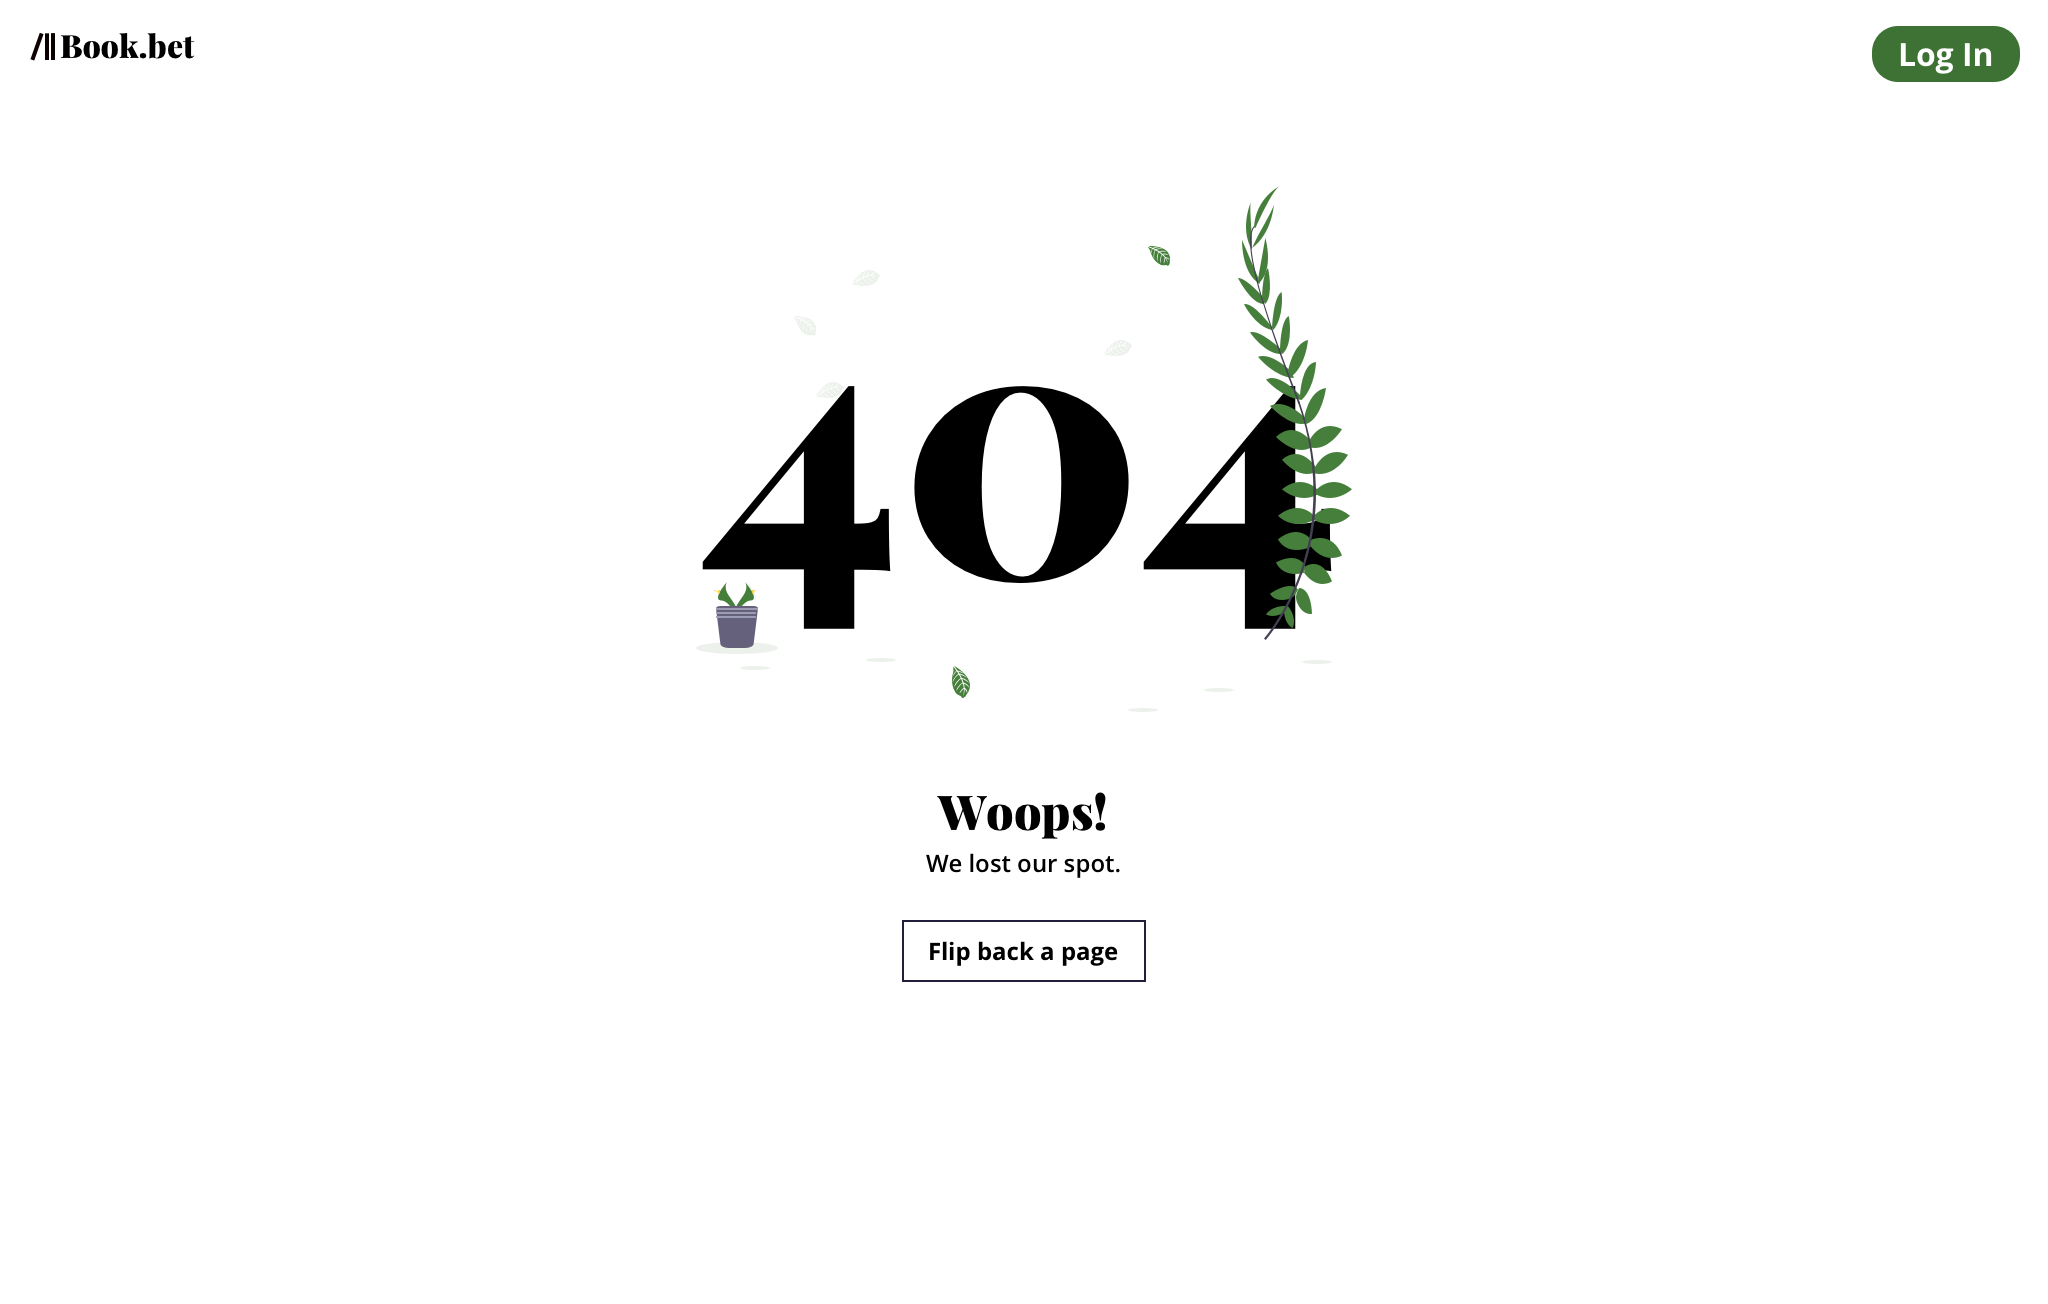 007 - 404 Page.png